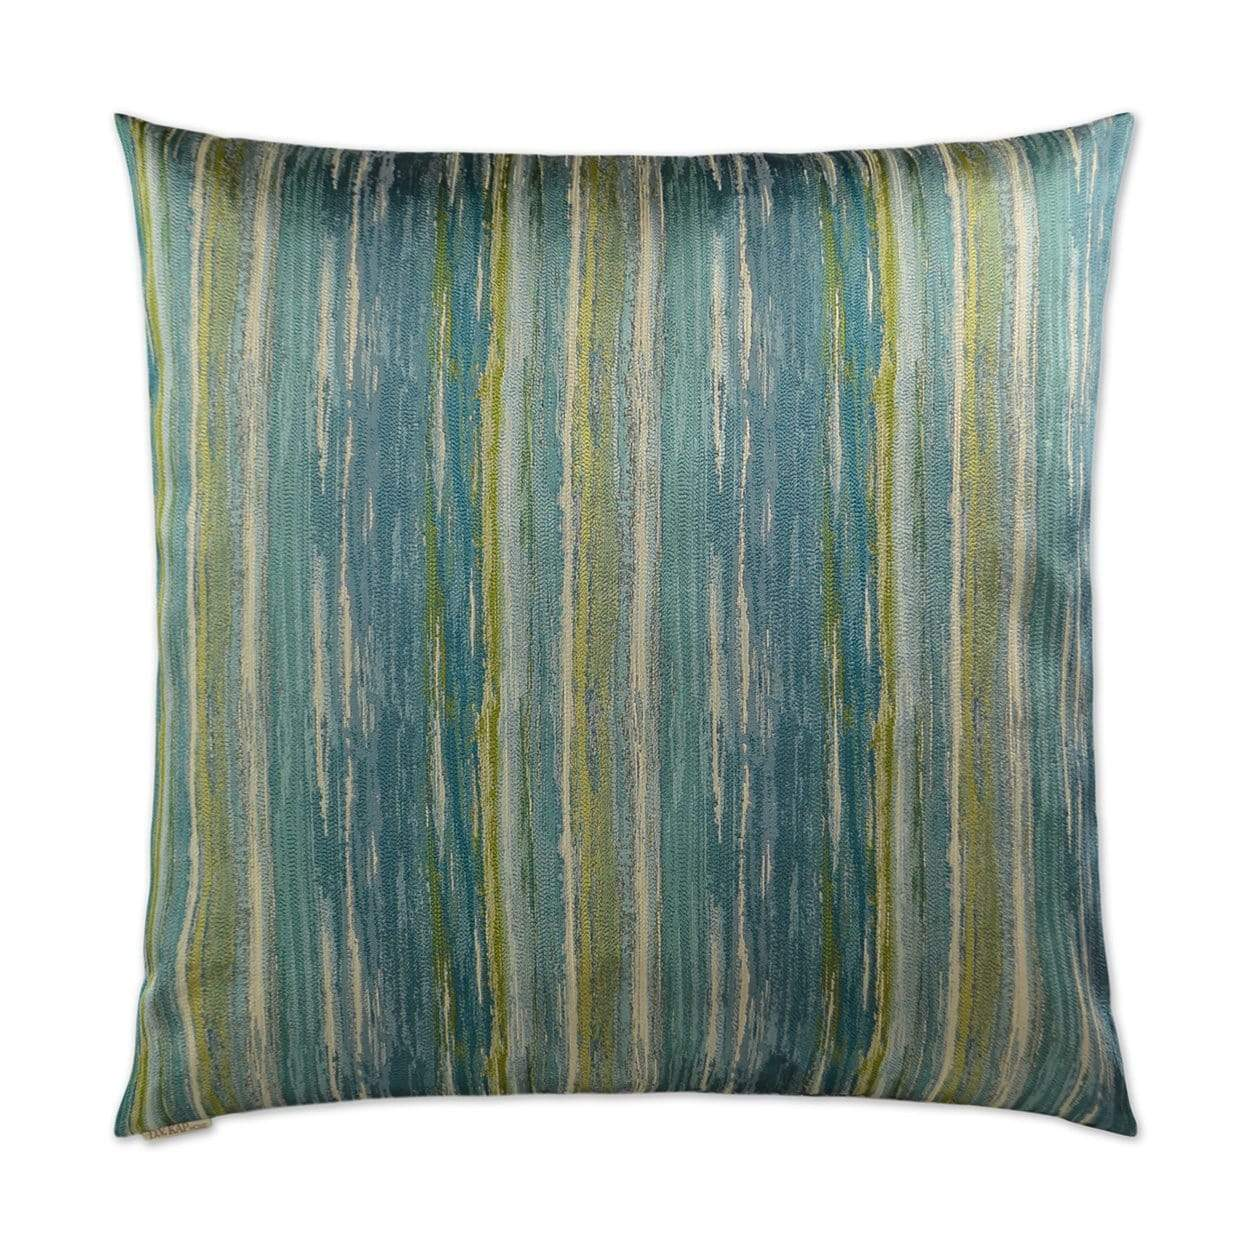 D.V. Kap D.V. Kap Nimby Pillow - Available in 2 Colors Aqua 2878-A